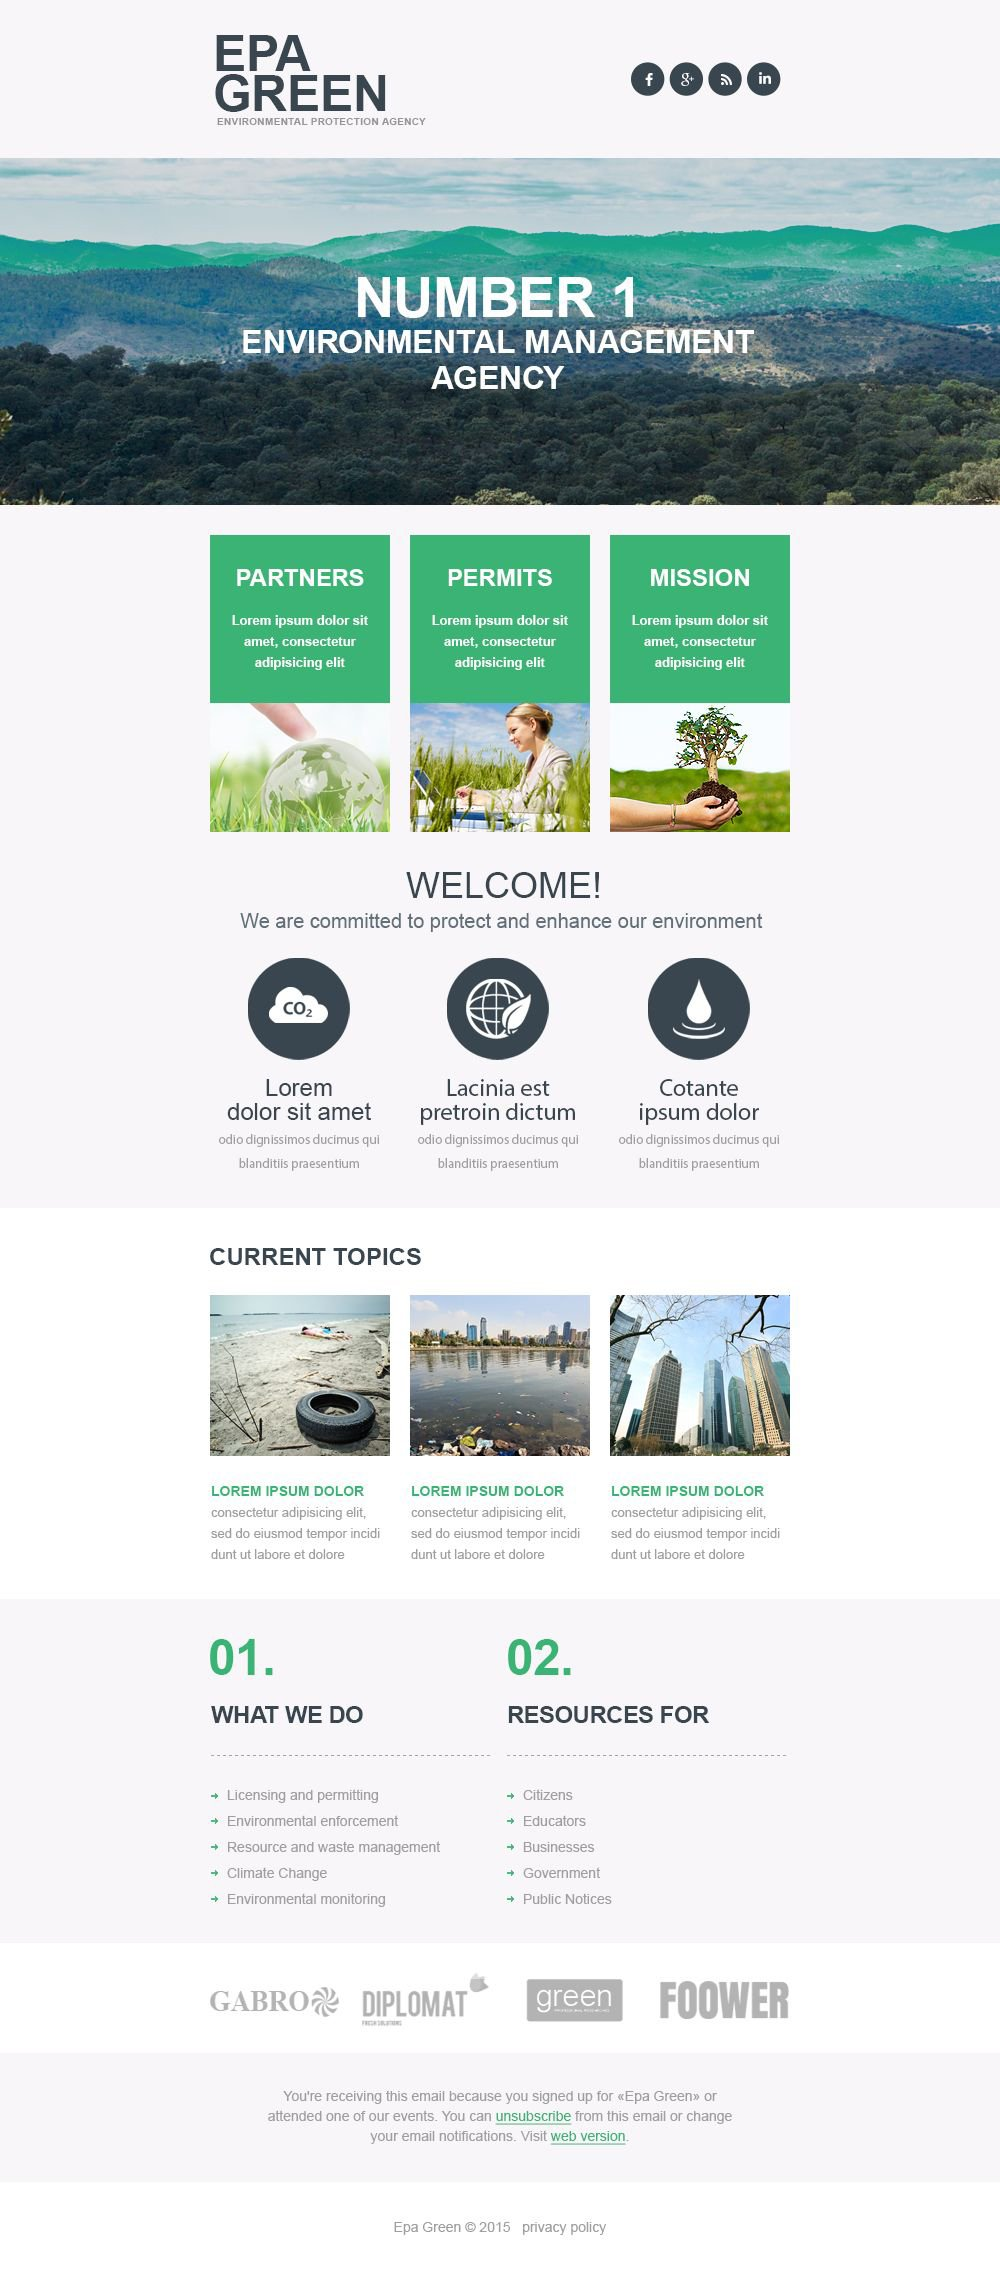 The Epa Green Engroon Renewable Energy Newsletter Template Design 53702, one of the best Newsletter templates of its kind (most popular, alternative power), also known as epa green Engroon Renewable energy Newsletter template, energy Newsletter template, electric contractor company Newsletter template, electrician Newsletter template, lighting Newsletter template, services Newsletter template, estimate Newsletter template, work Newsletter template, team Newsletter template, commercial Newsletter template, office Newsletter template, industrial Newsletter template, lamps Newsletter template, bra Newsletter template, illumination Newsletter template, craftsmen Newsletter template, employment Newsletter template, team Newsletter template, lighten Newsletter template, life Newsletter template, employment Newsletter template, flash Newsletter template, shine Newsletter template, home Newsletter template, FAQ electrics and related with epa green Engroon Renewable energy, energy, electric contractor company, electrician, lighting, services, estimate, work, team, commercial, office, industrial, lamps, bra, illumination, craftsmen, employment, team, lighten, life, employment, flash, shine, home, FAQ electrics, etc.